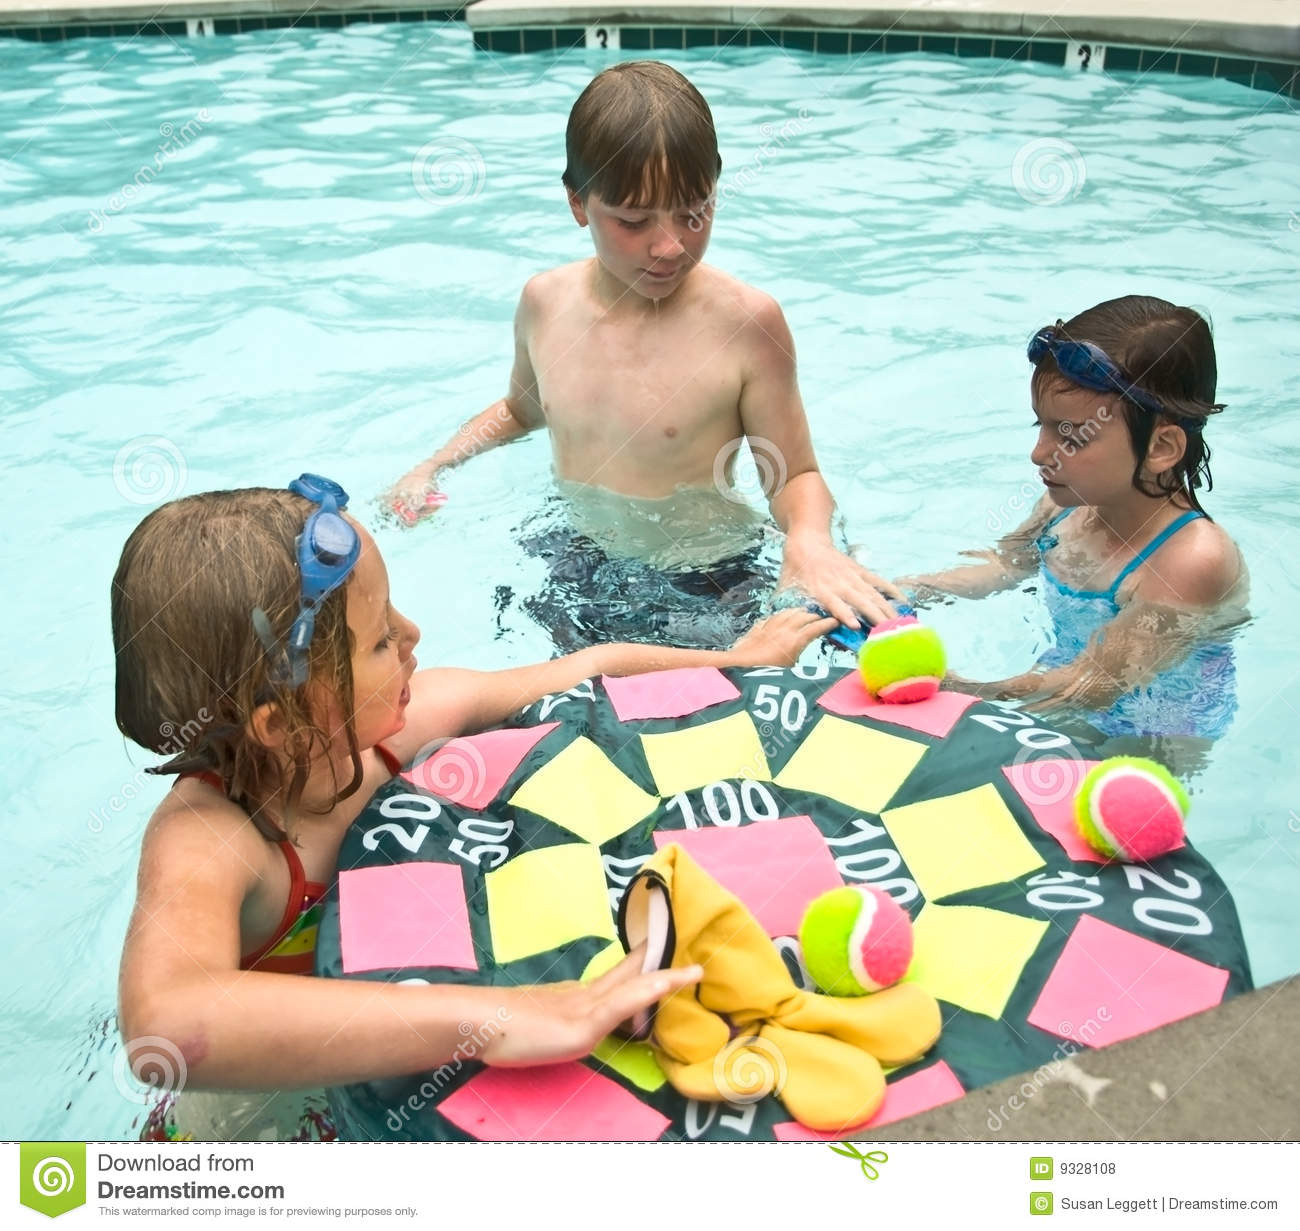 Kids Ready To Play Pool Game Royalty Free Stock Photos Image 9328108